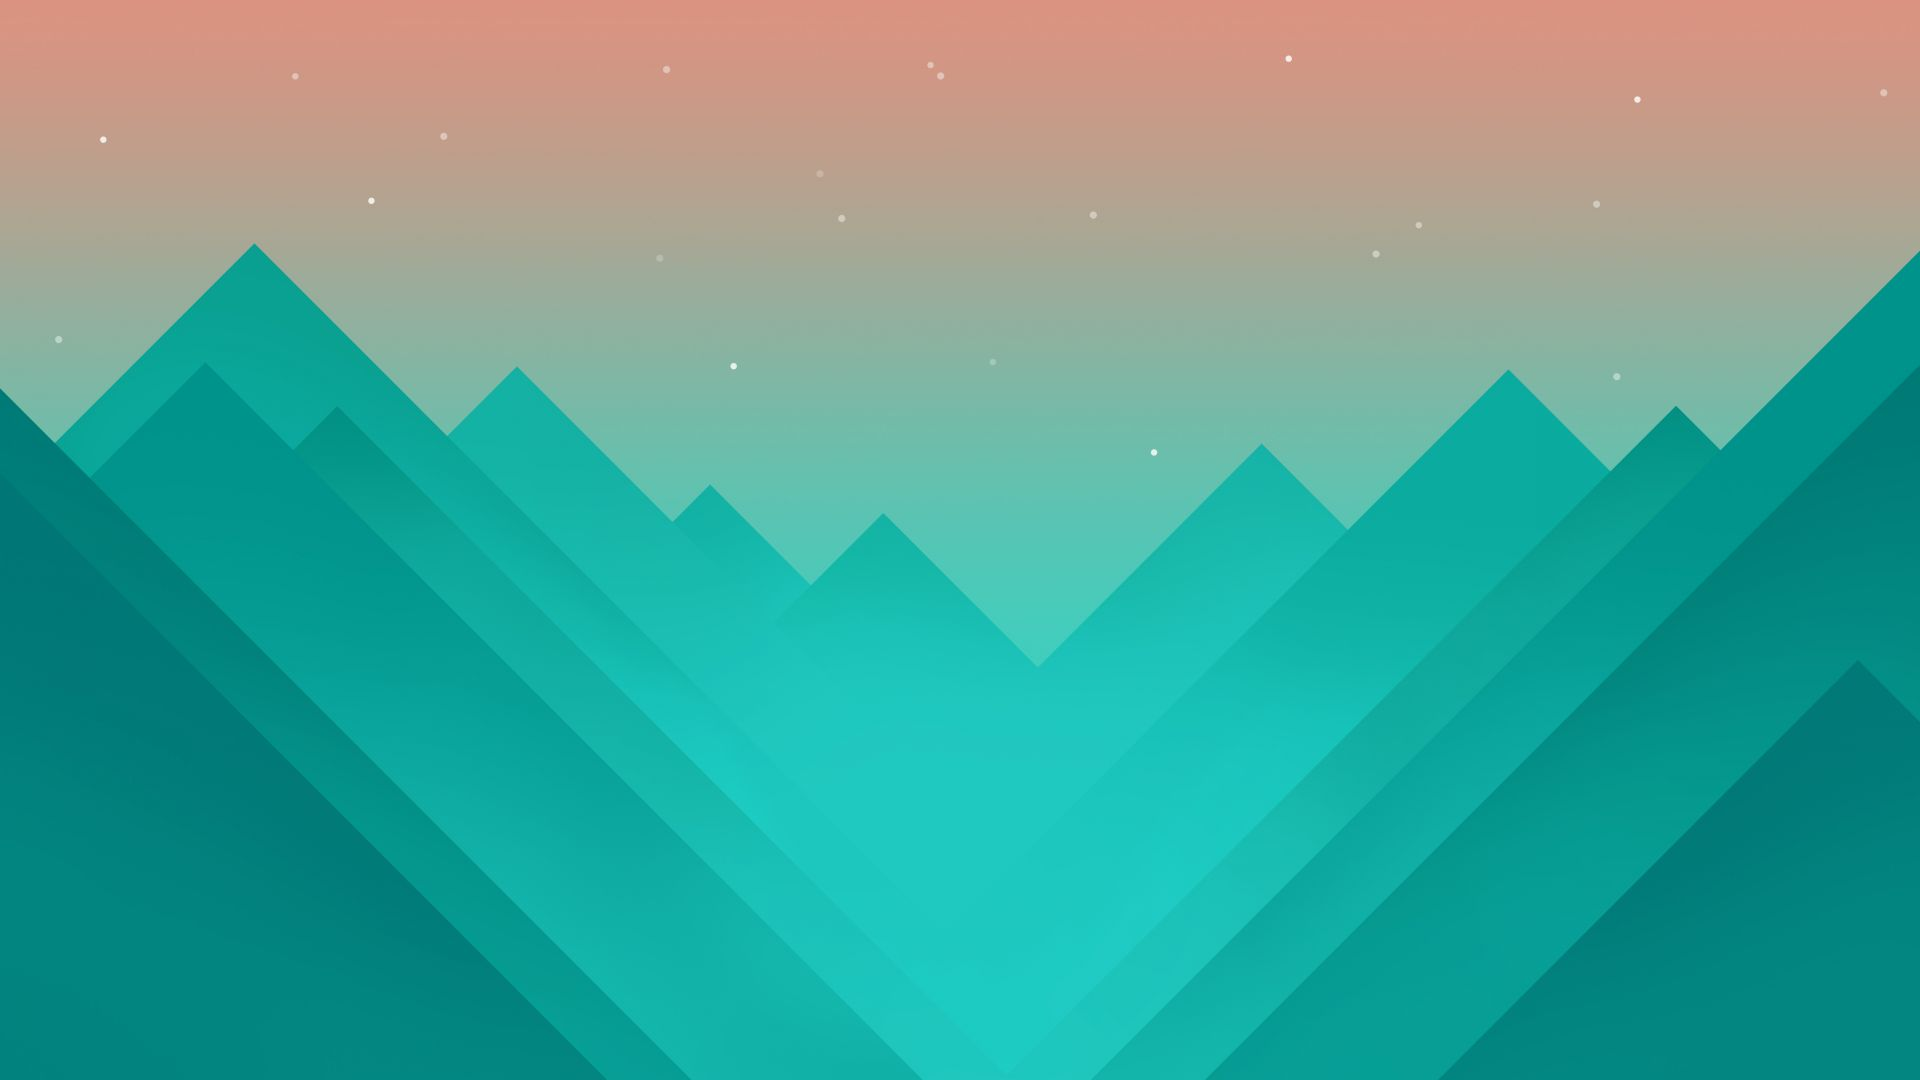 flat, polygons, 4k, 5k, mountains, iphone wallpaper, android wallpaper, abstract (horizontal)